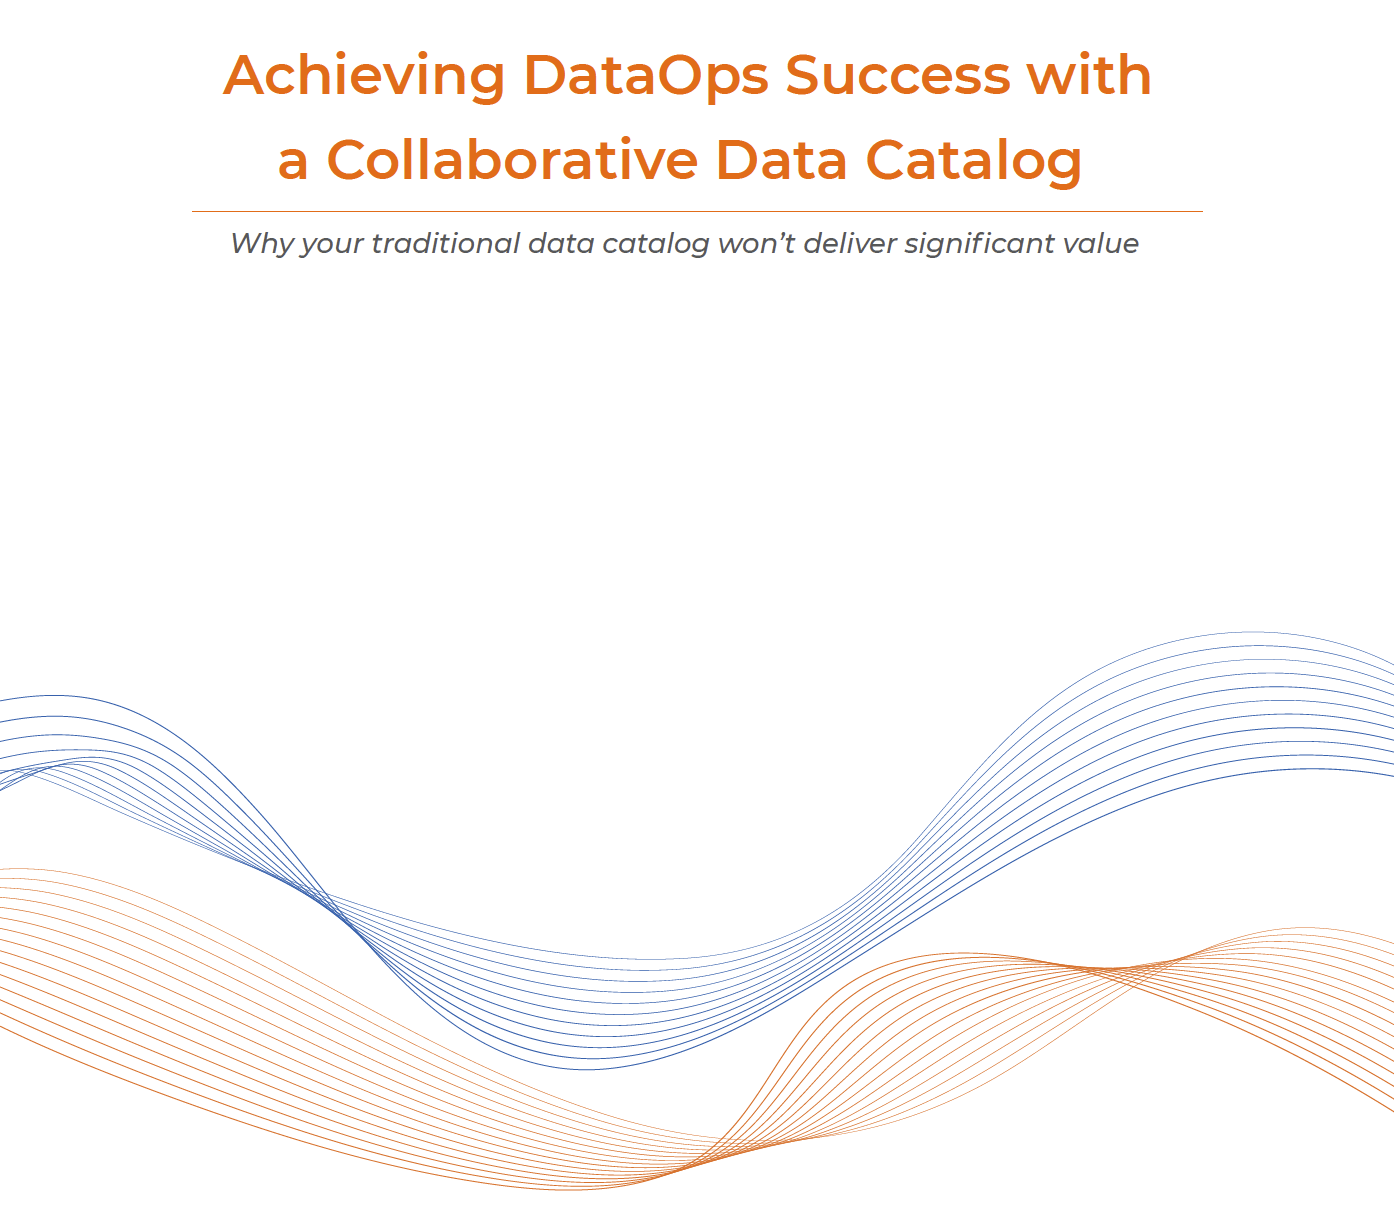 Collaborative Data Catalog to Achieve DataOps Success and Deliver Significant Value